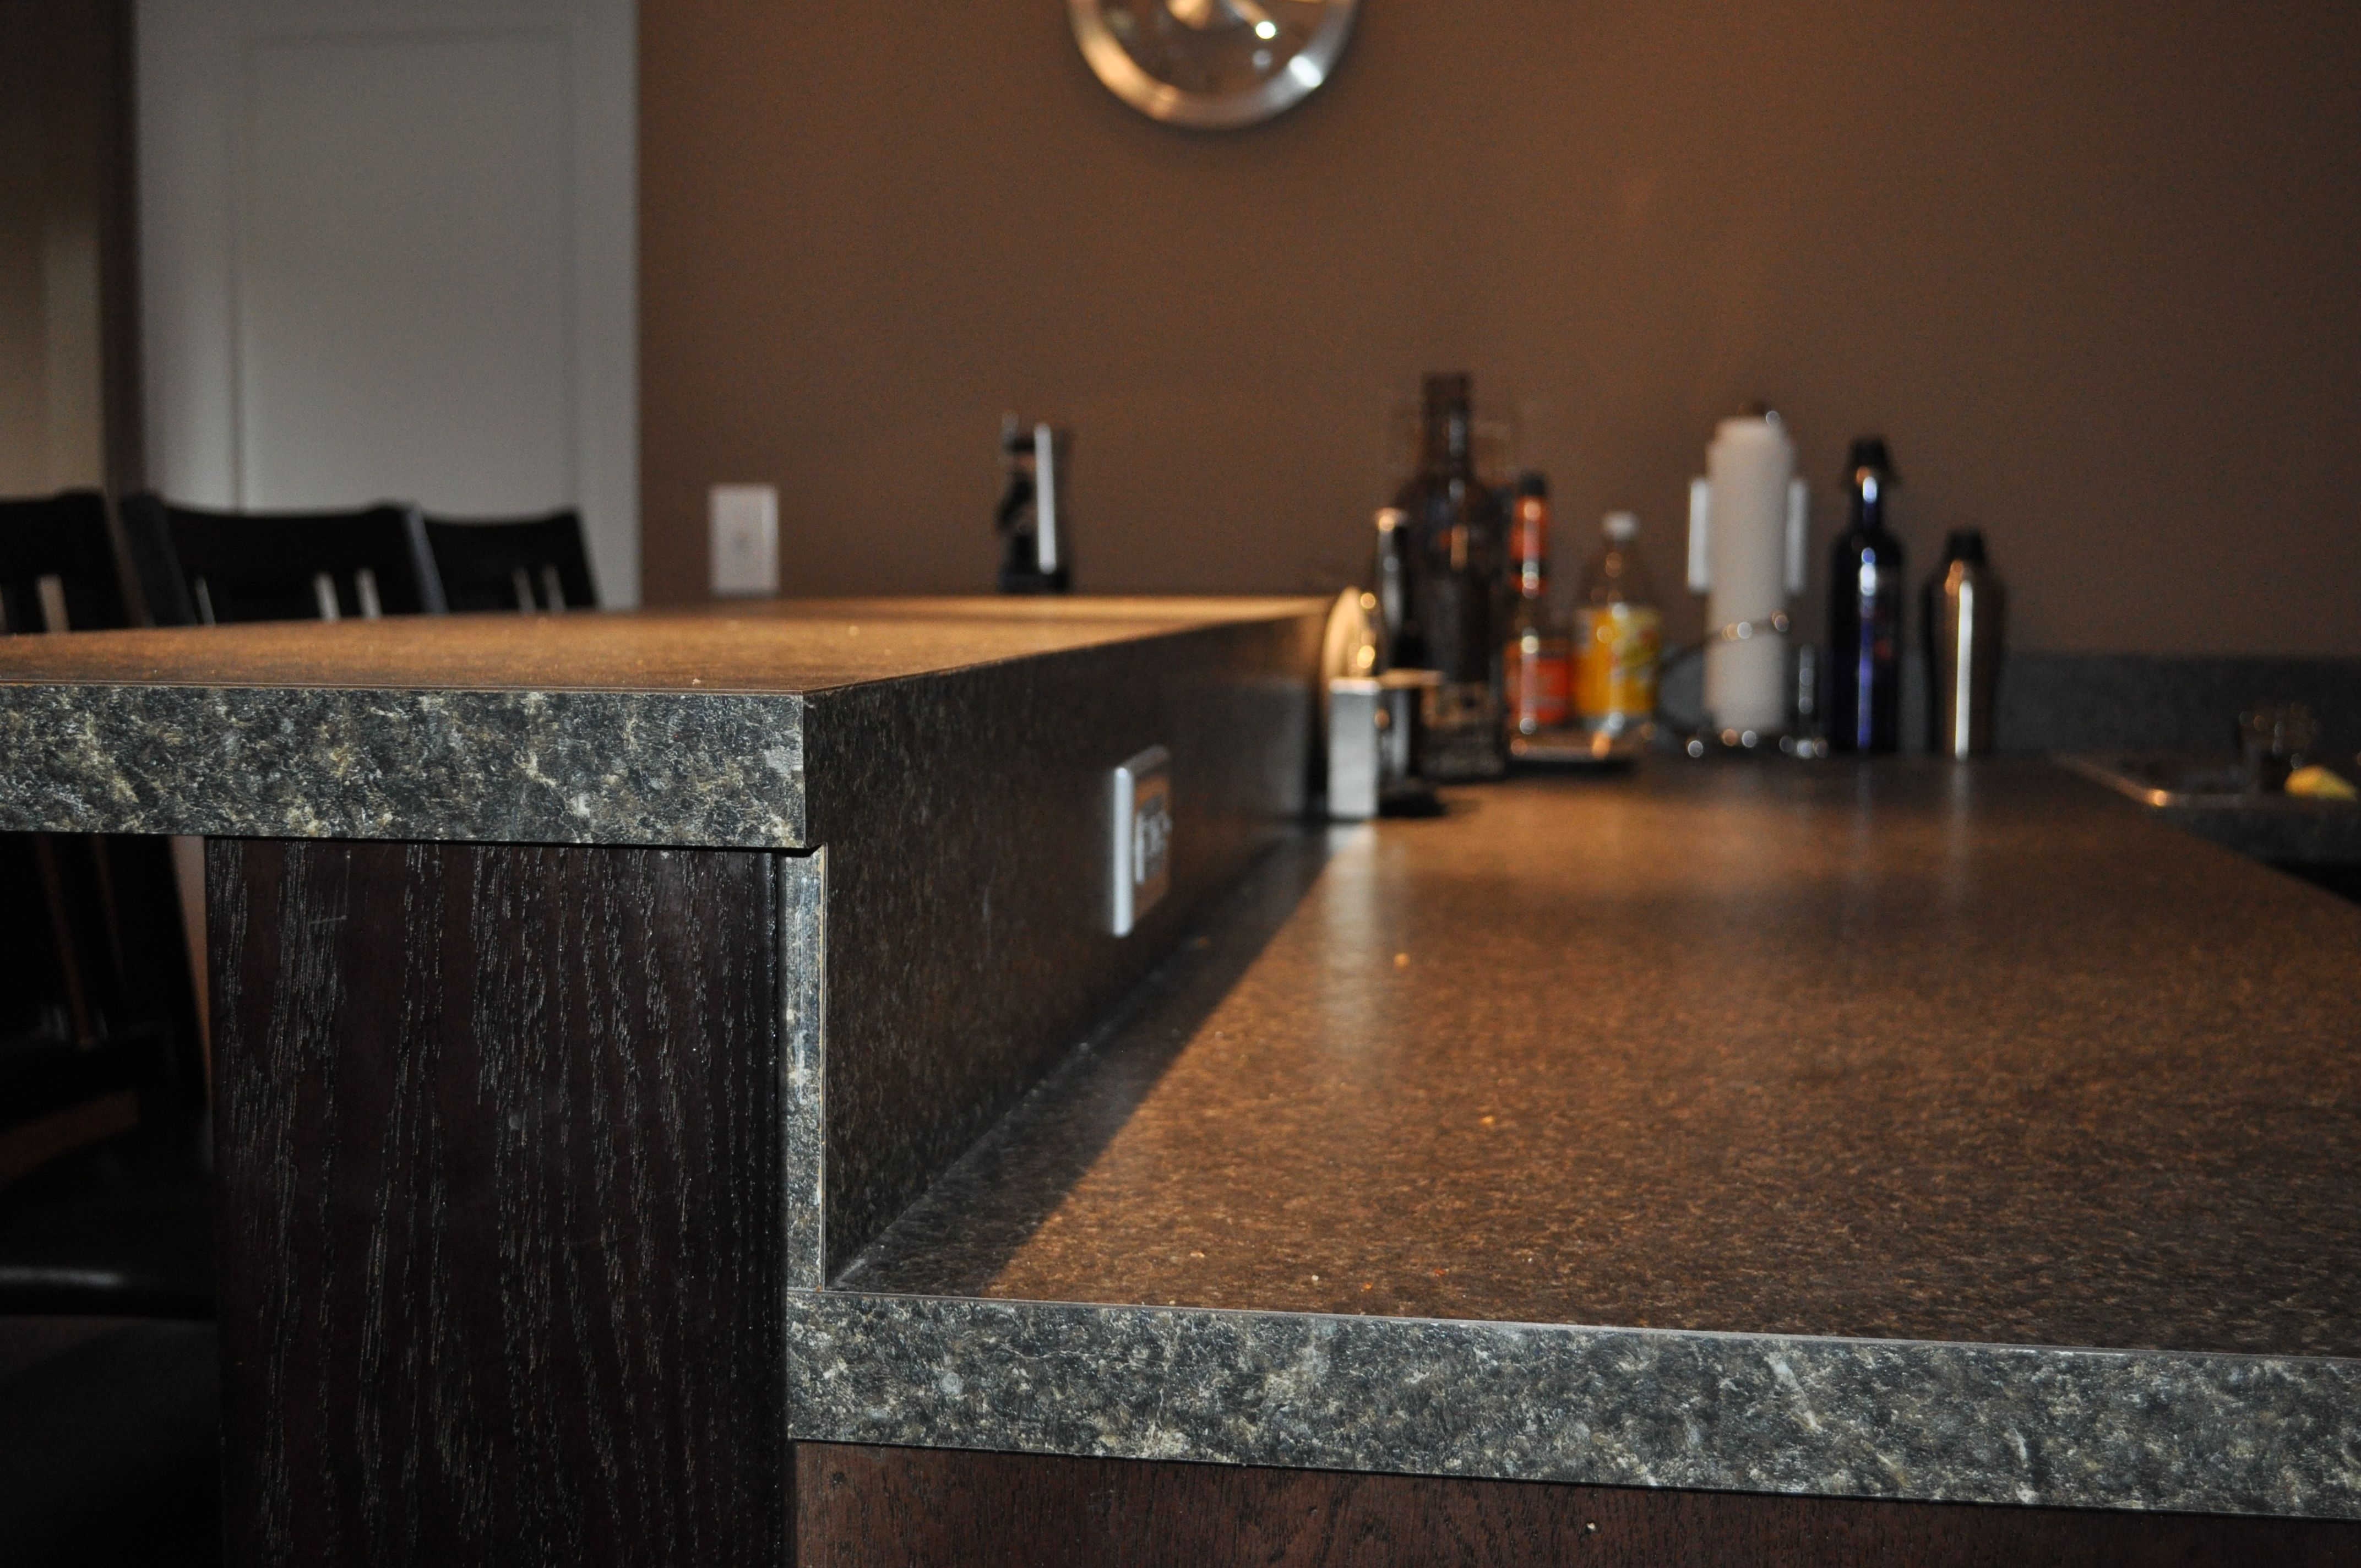 Bar Countertop With Backsplash Ran Flush To Raised Countertop With